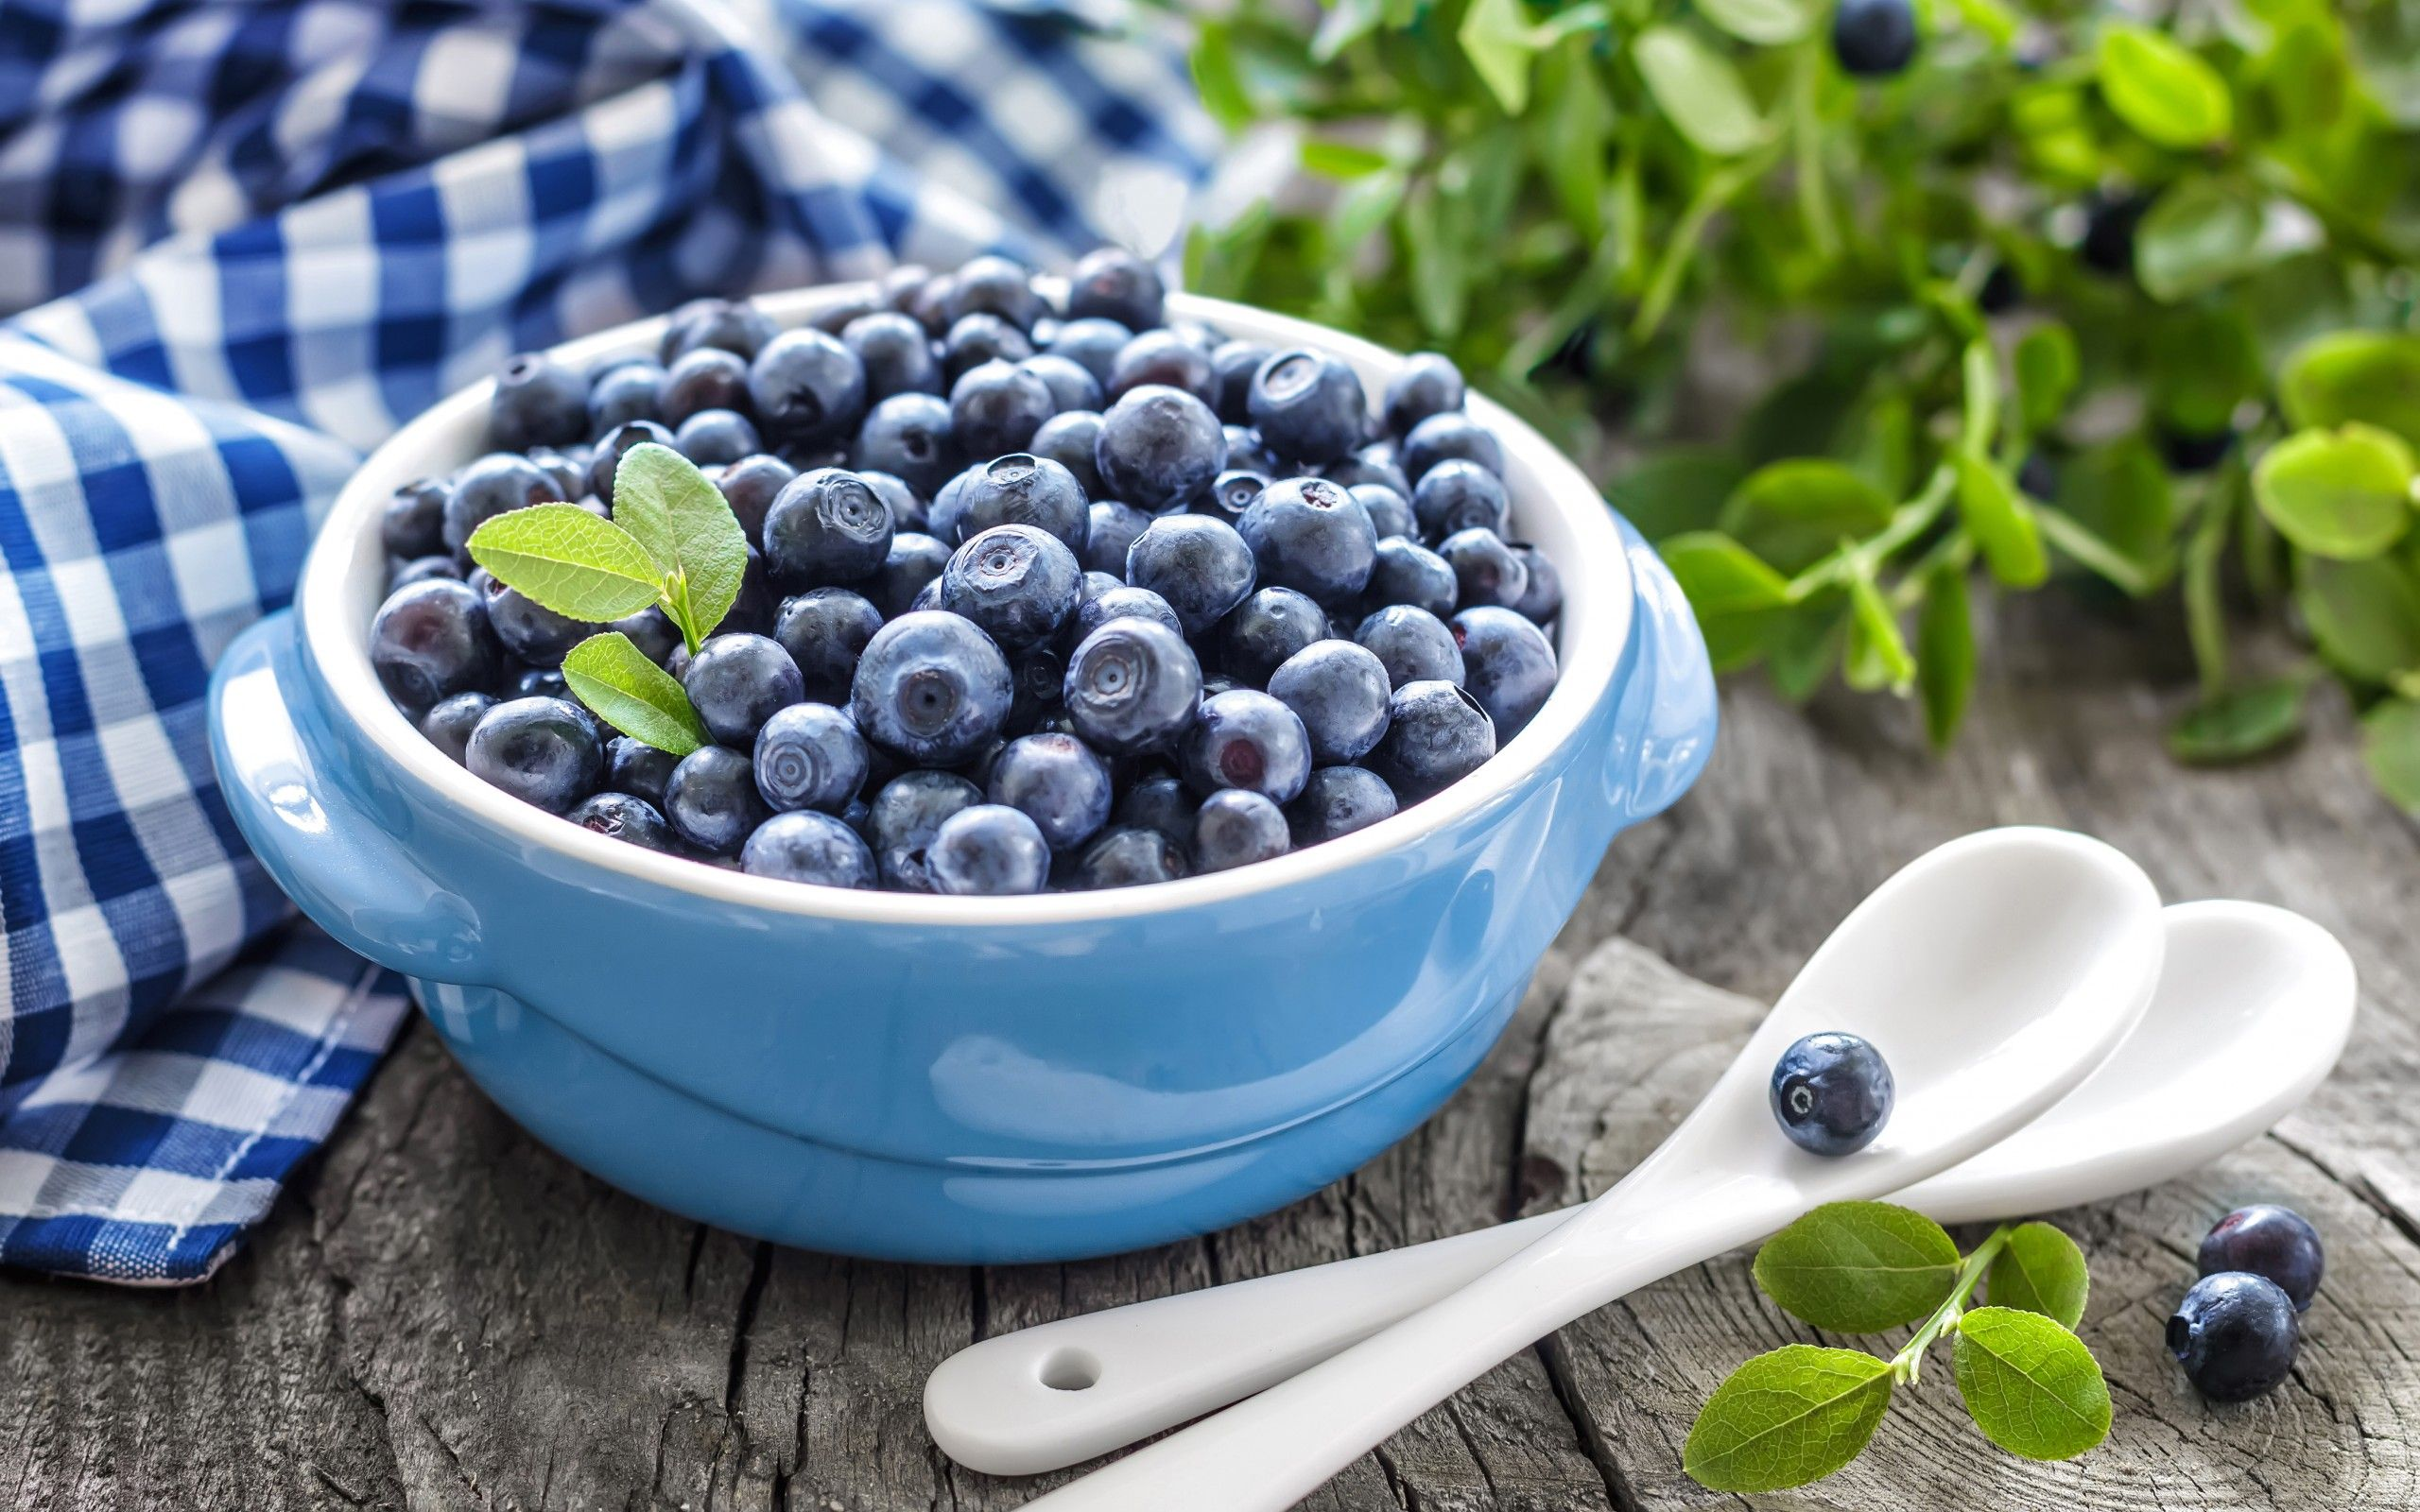 Download Hd Wallpapers Of Blueberries Nature Fresh Food